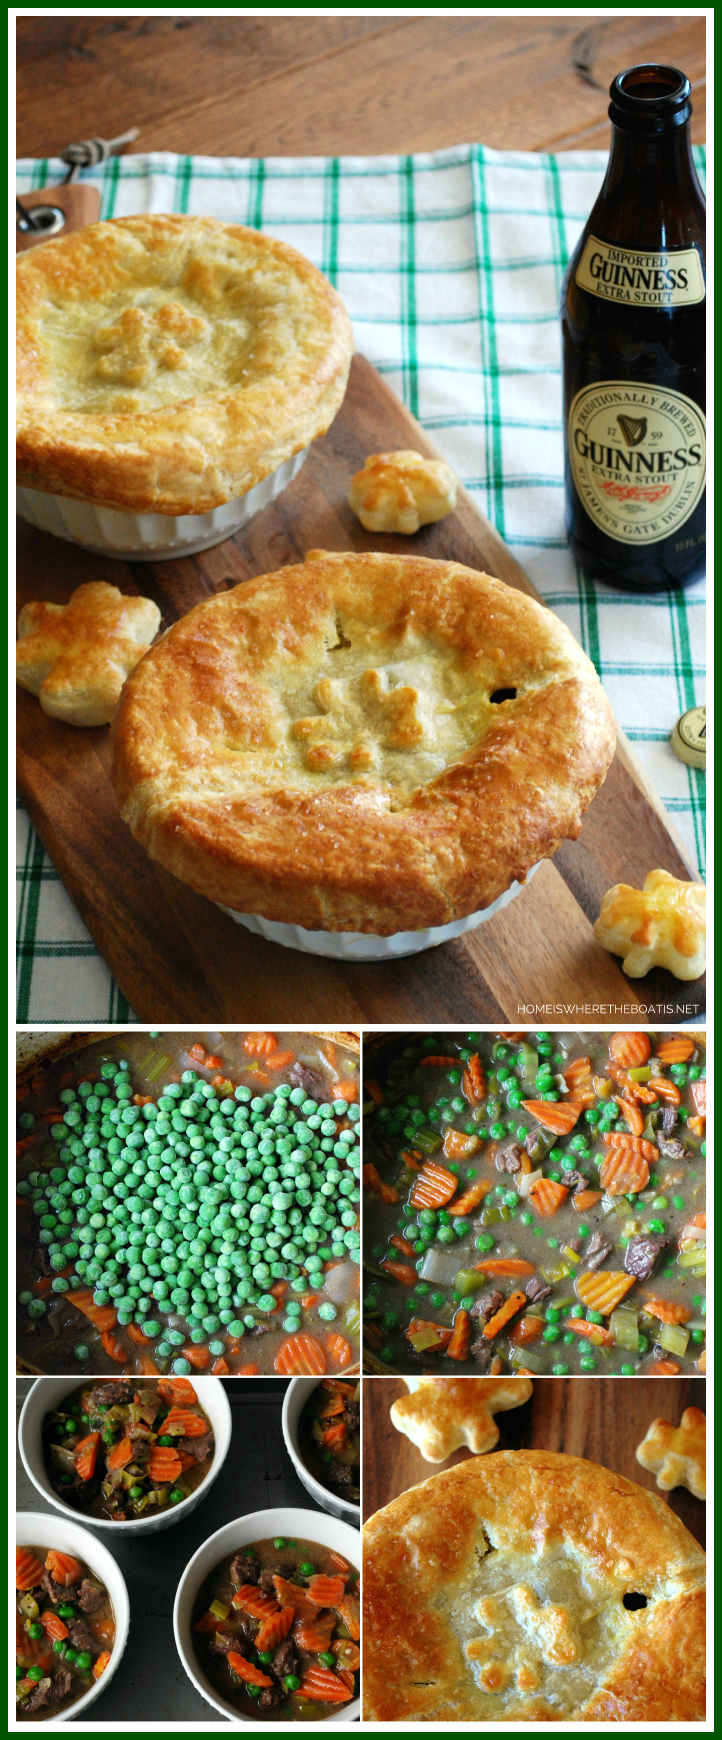 Beef and Guinness Pot Pie! A celebration in a bowl with puff pastry shamrocks | ©homeiswheretheboatis.net #StPatricksDay #potpie #Irish #stpatricksday #recipe #guinness